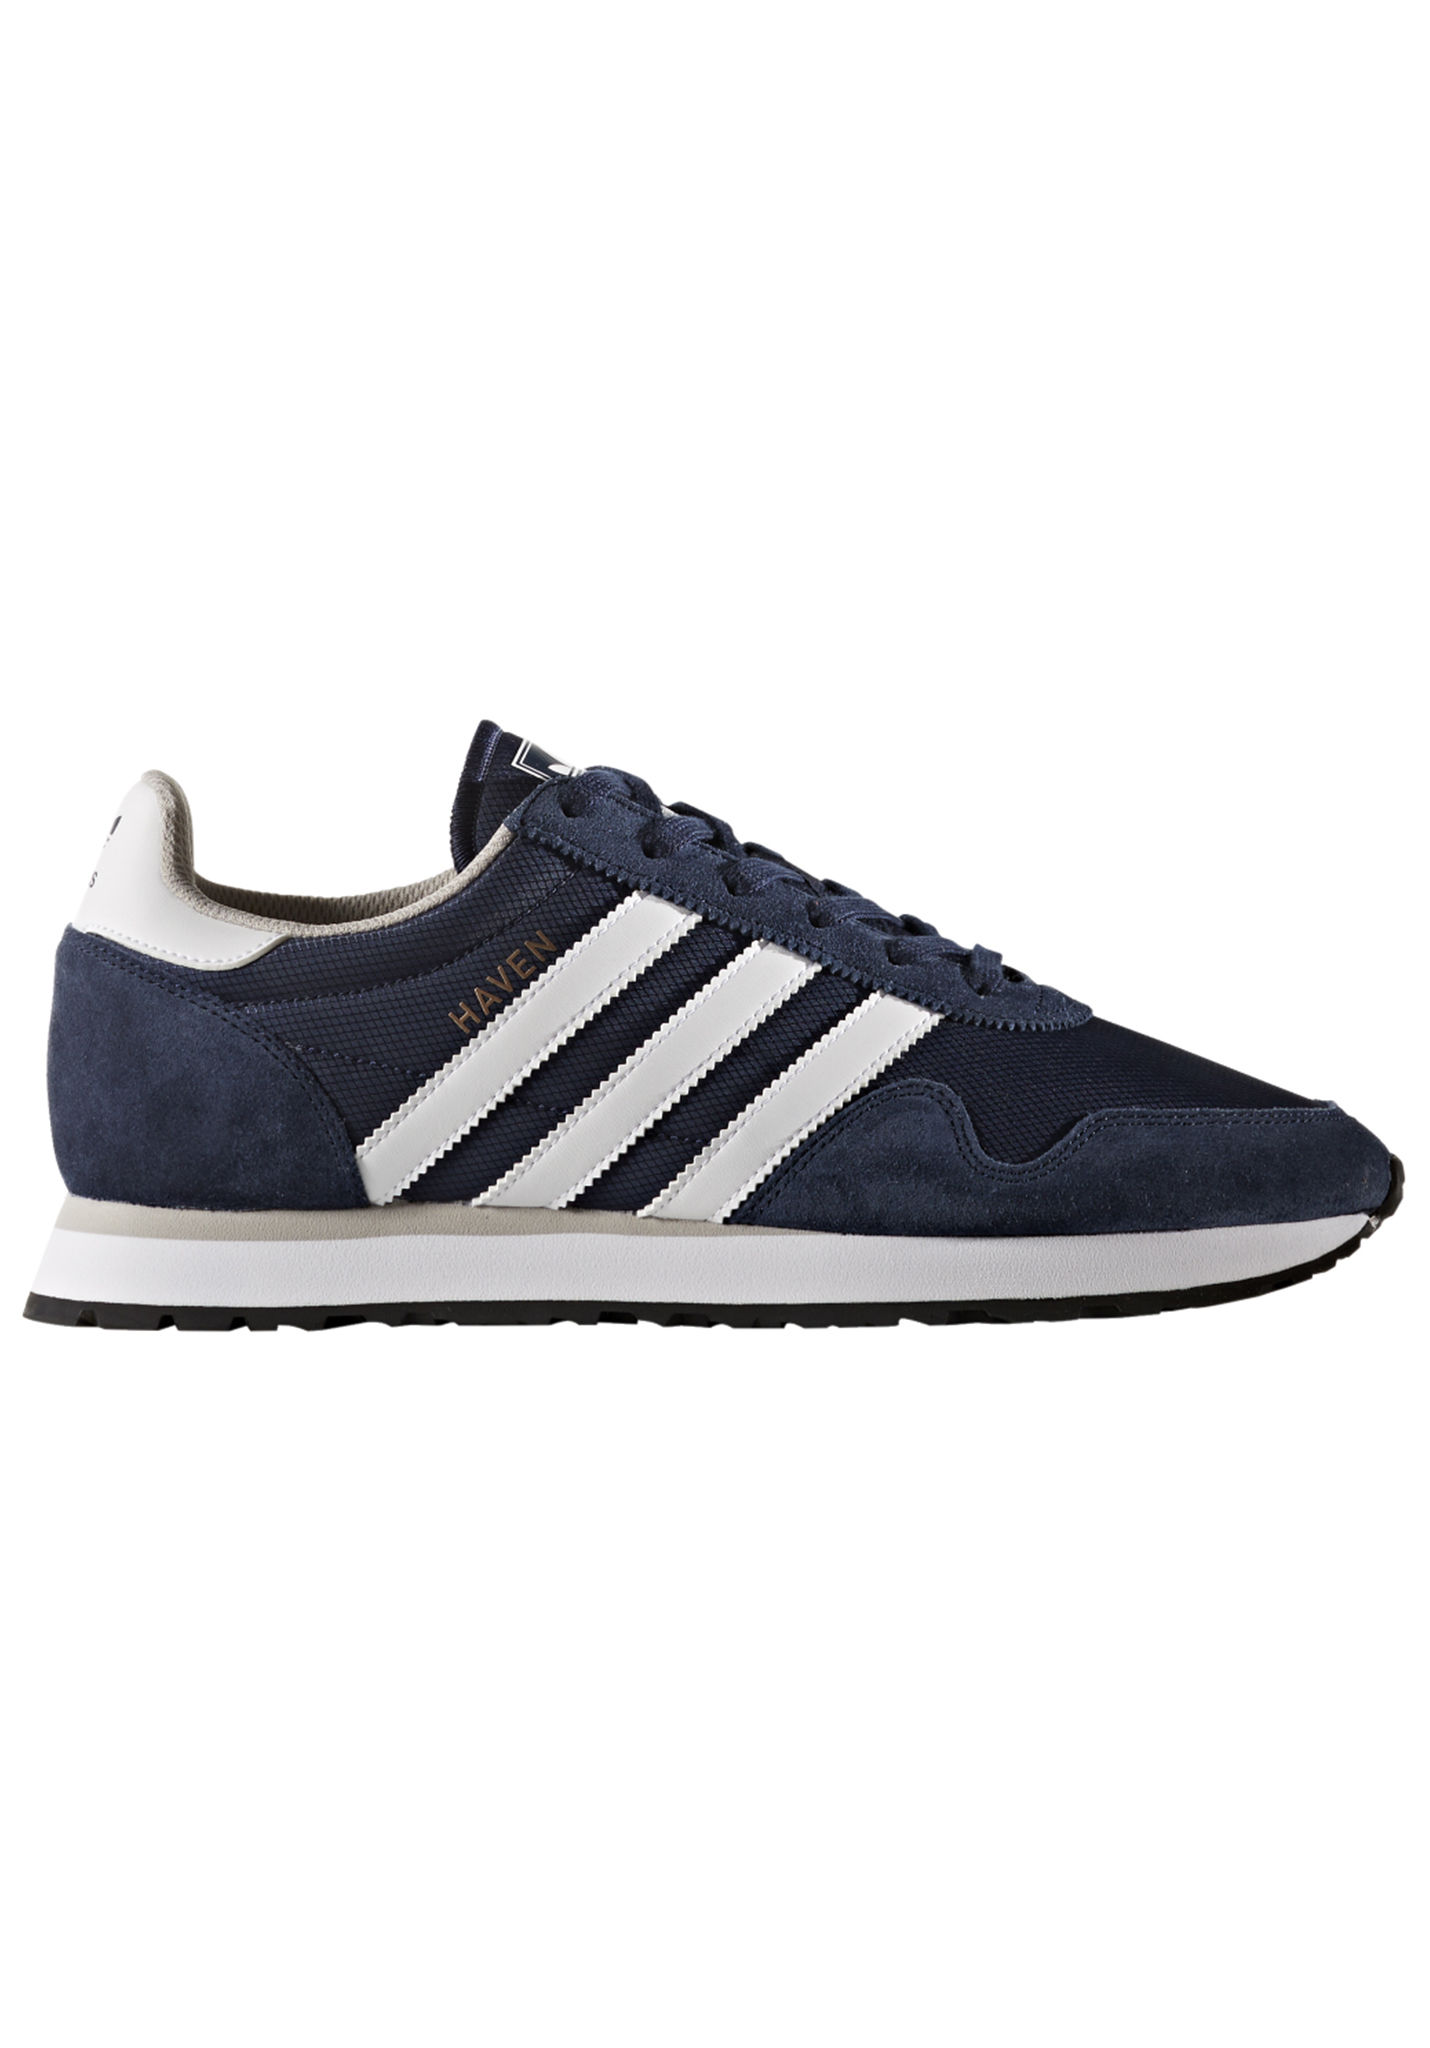 Sports Planet Azul Adidas Para Zapatillas Haven Hombres Originals A4x4CgqwF